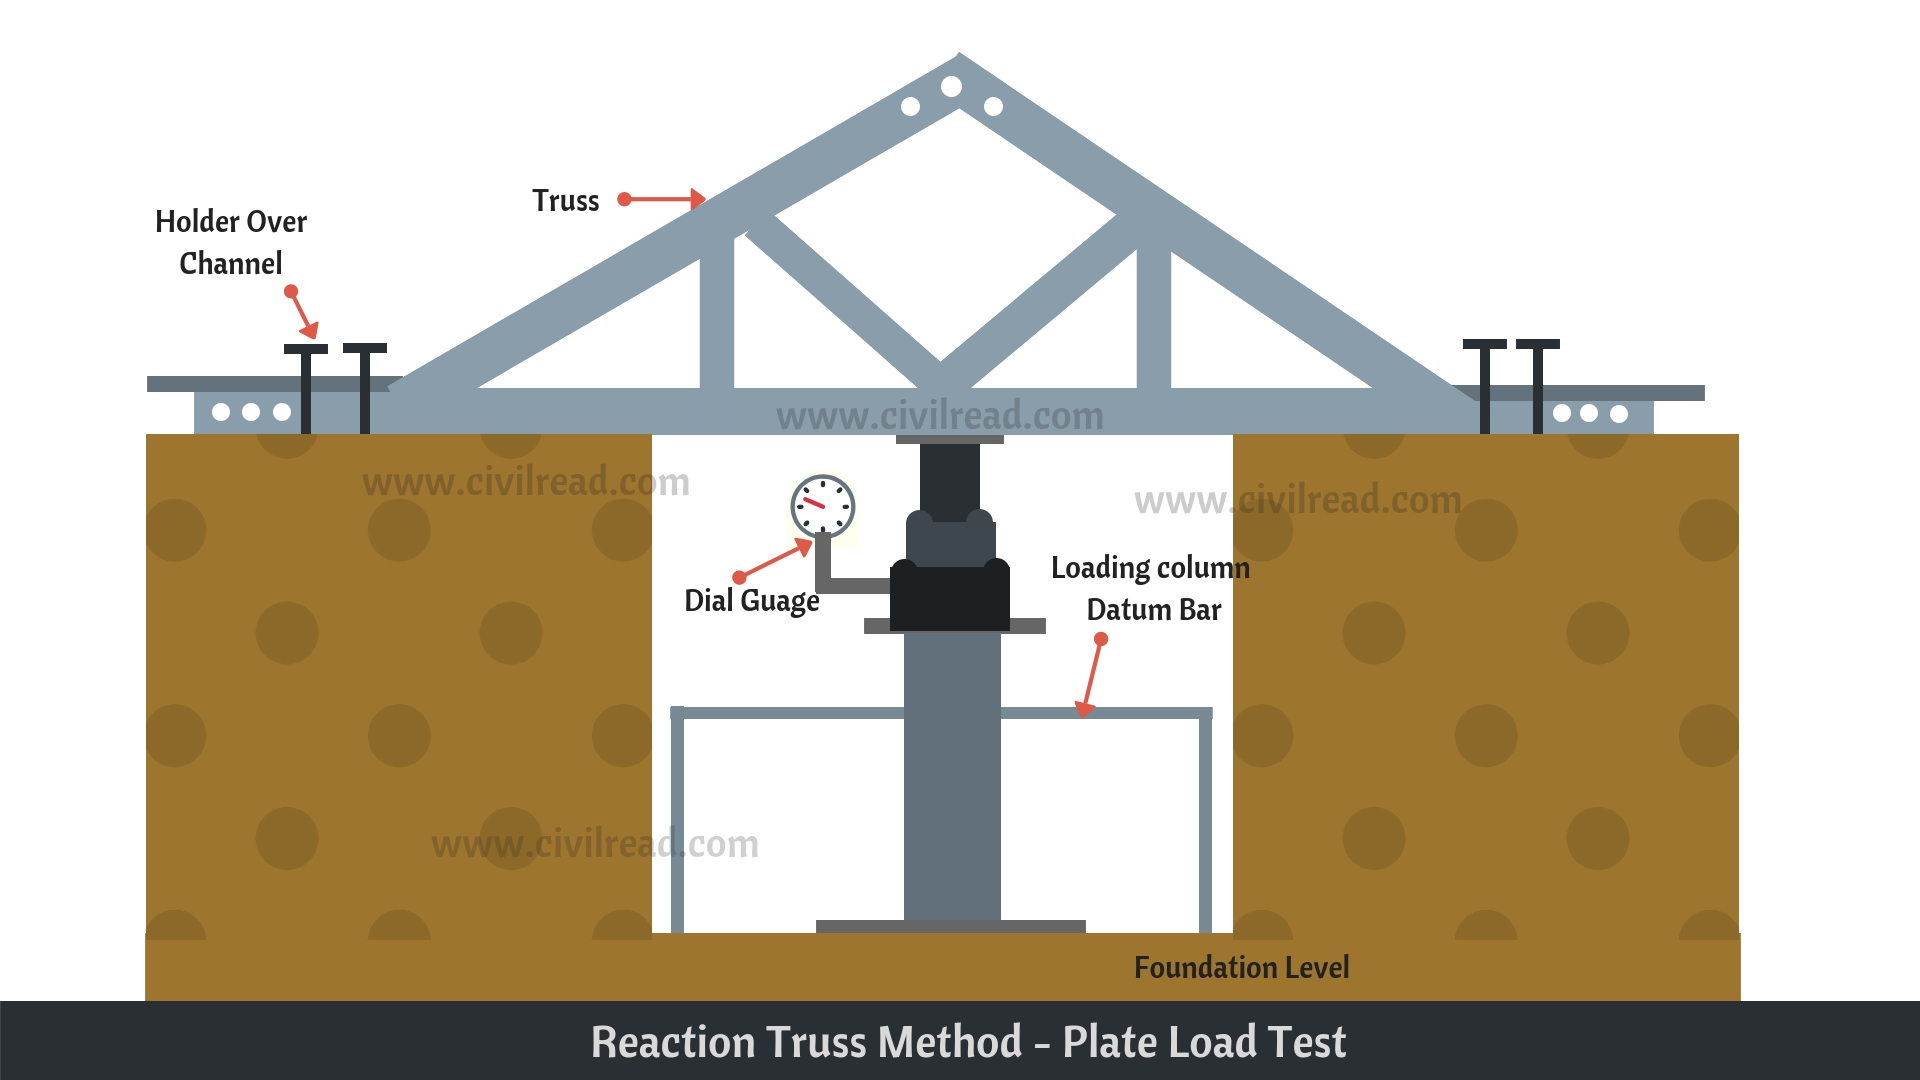 Reaction truss method - Plate load test